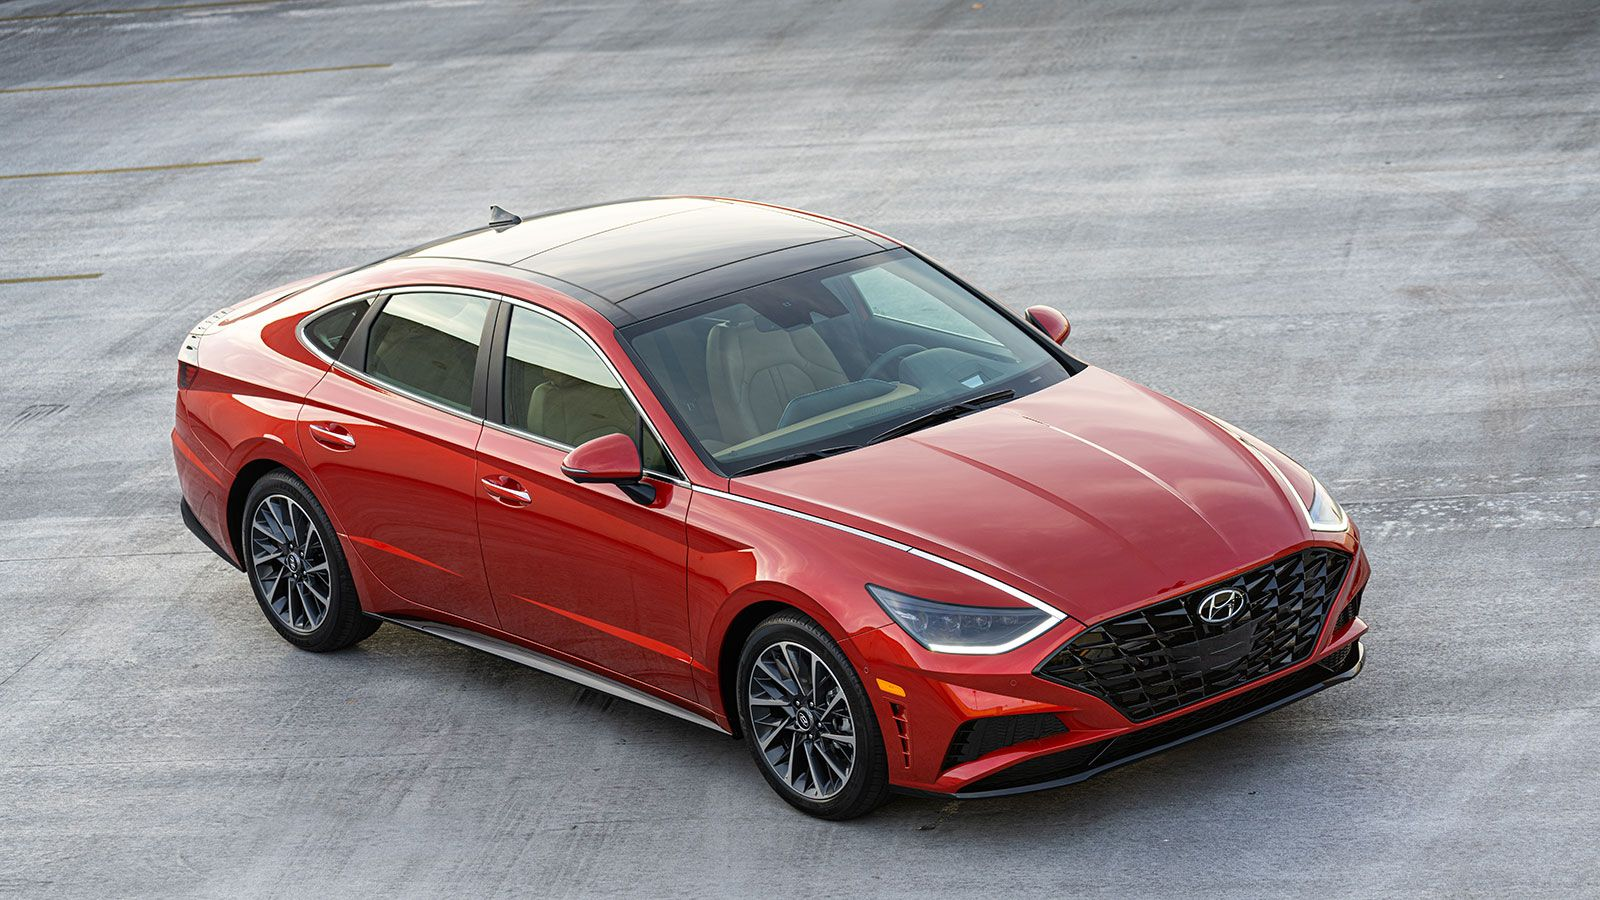 2020 Hyundai Sonata Review Everything You Need To Know